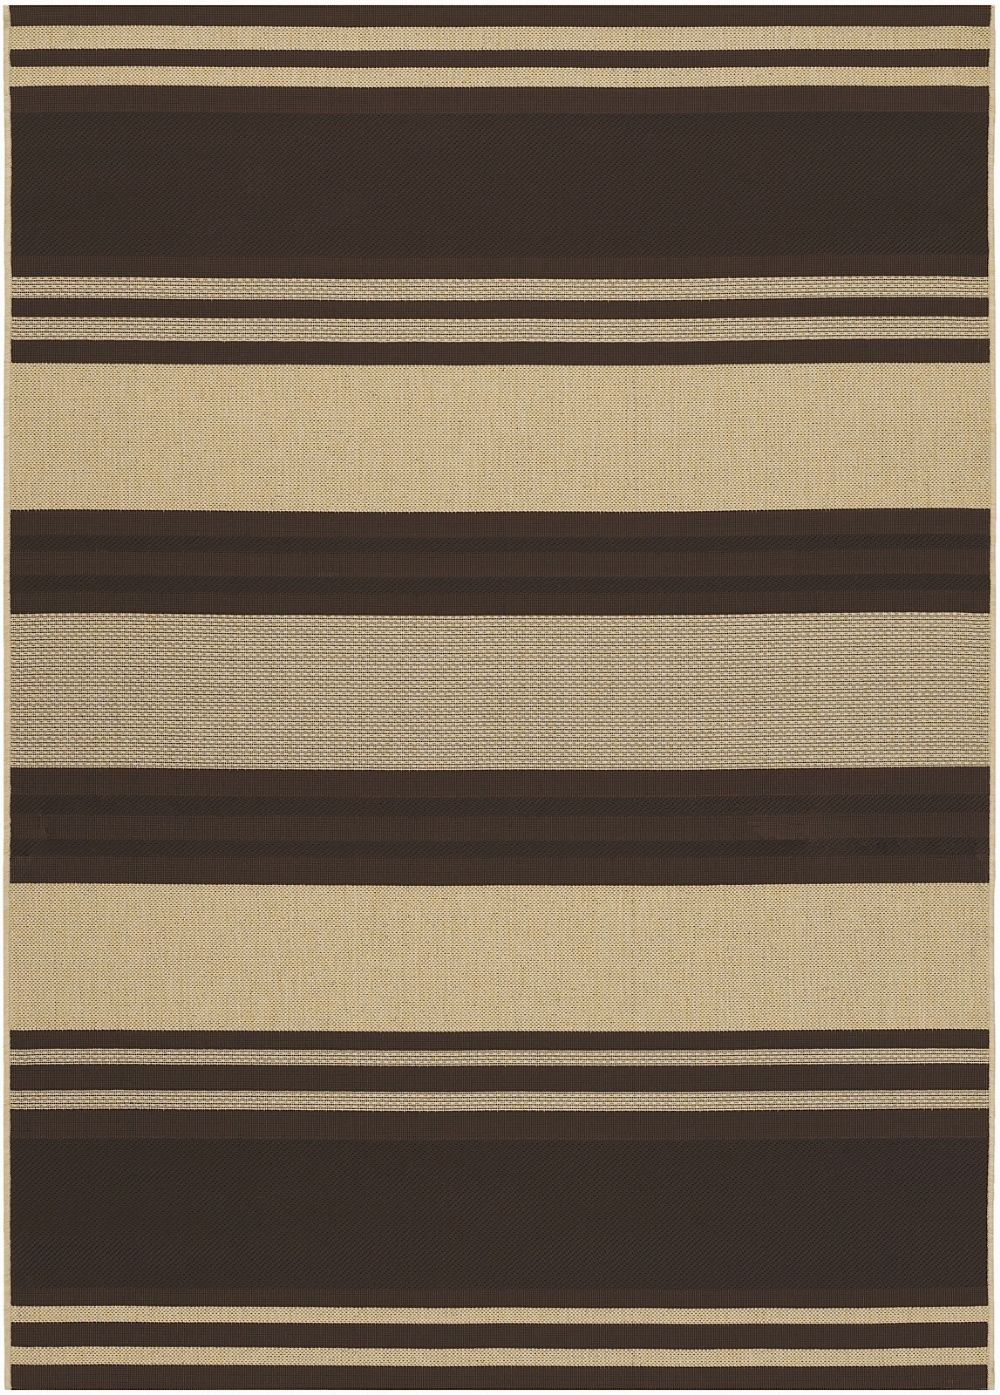 couristan five seasons solid/striped area rug collection